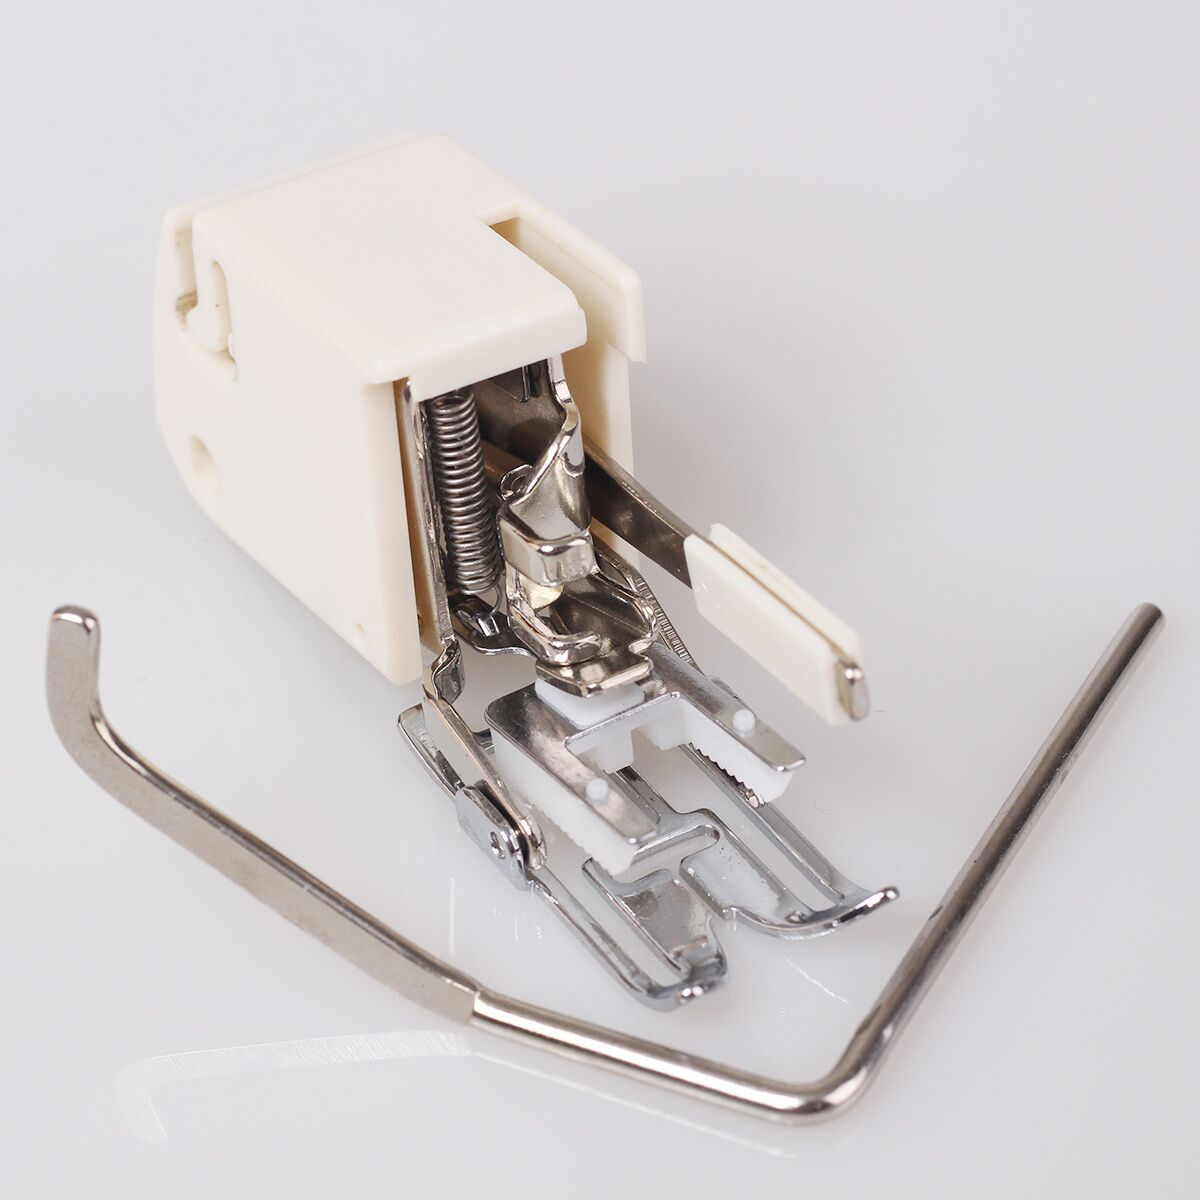 Janome Household Sewing Machine Parts Presser Foot Walking Foot Low Shank With